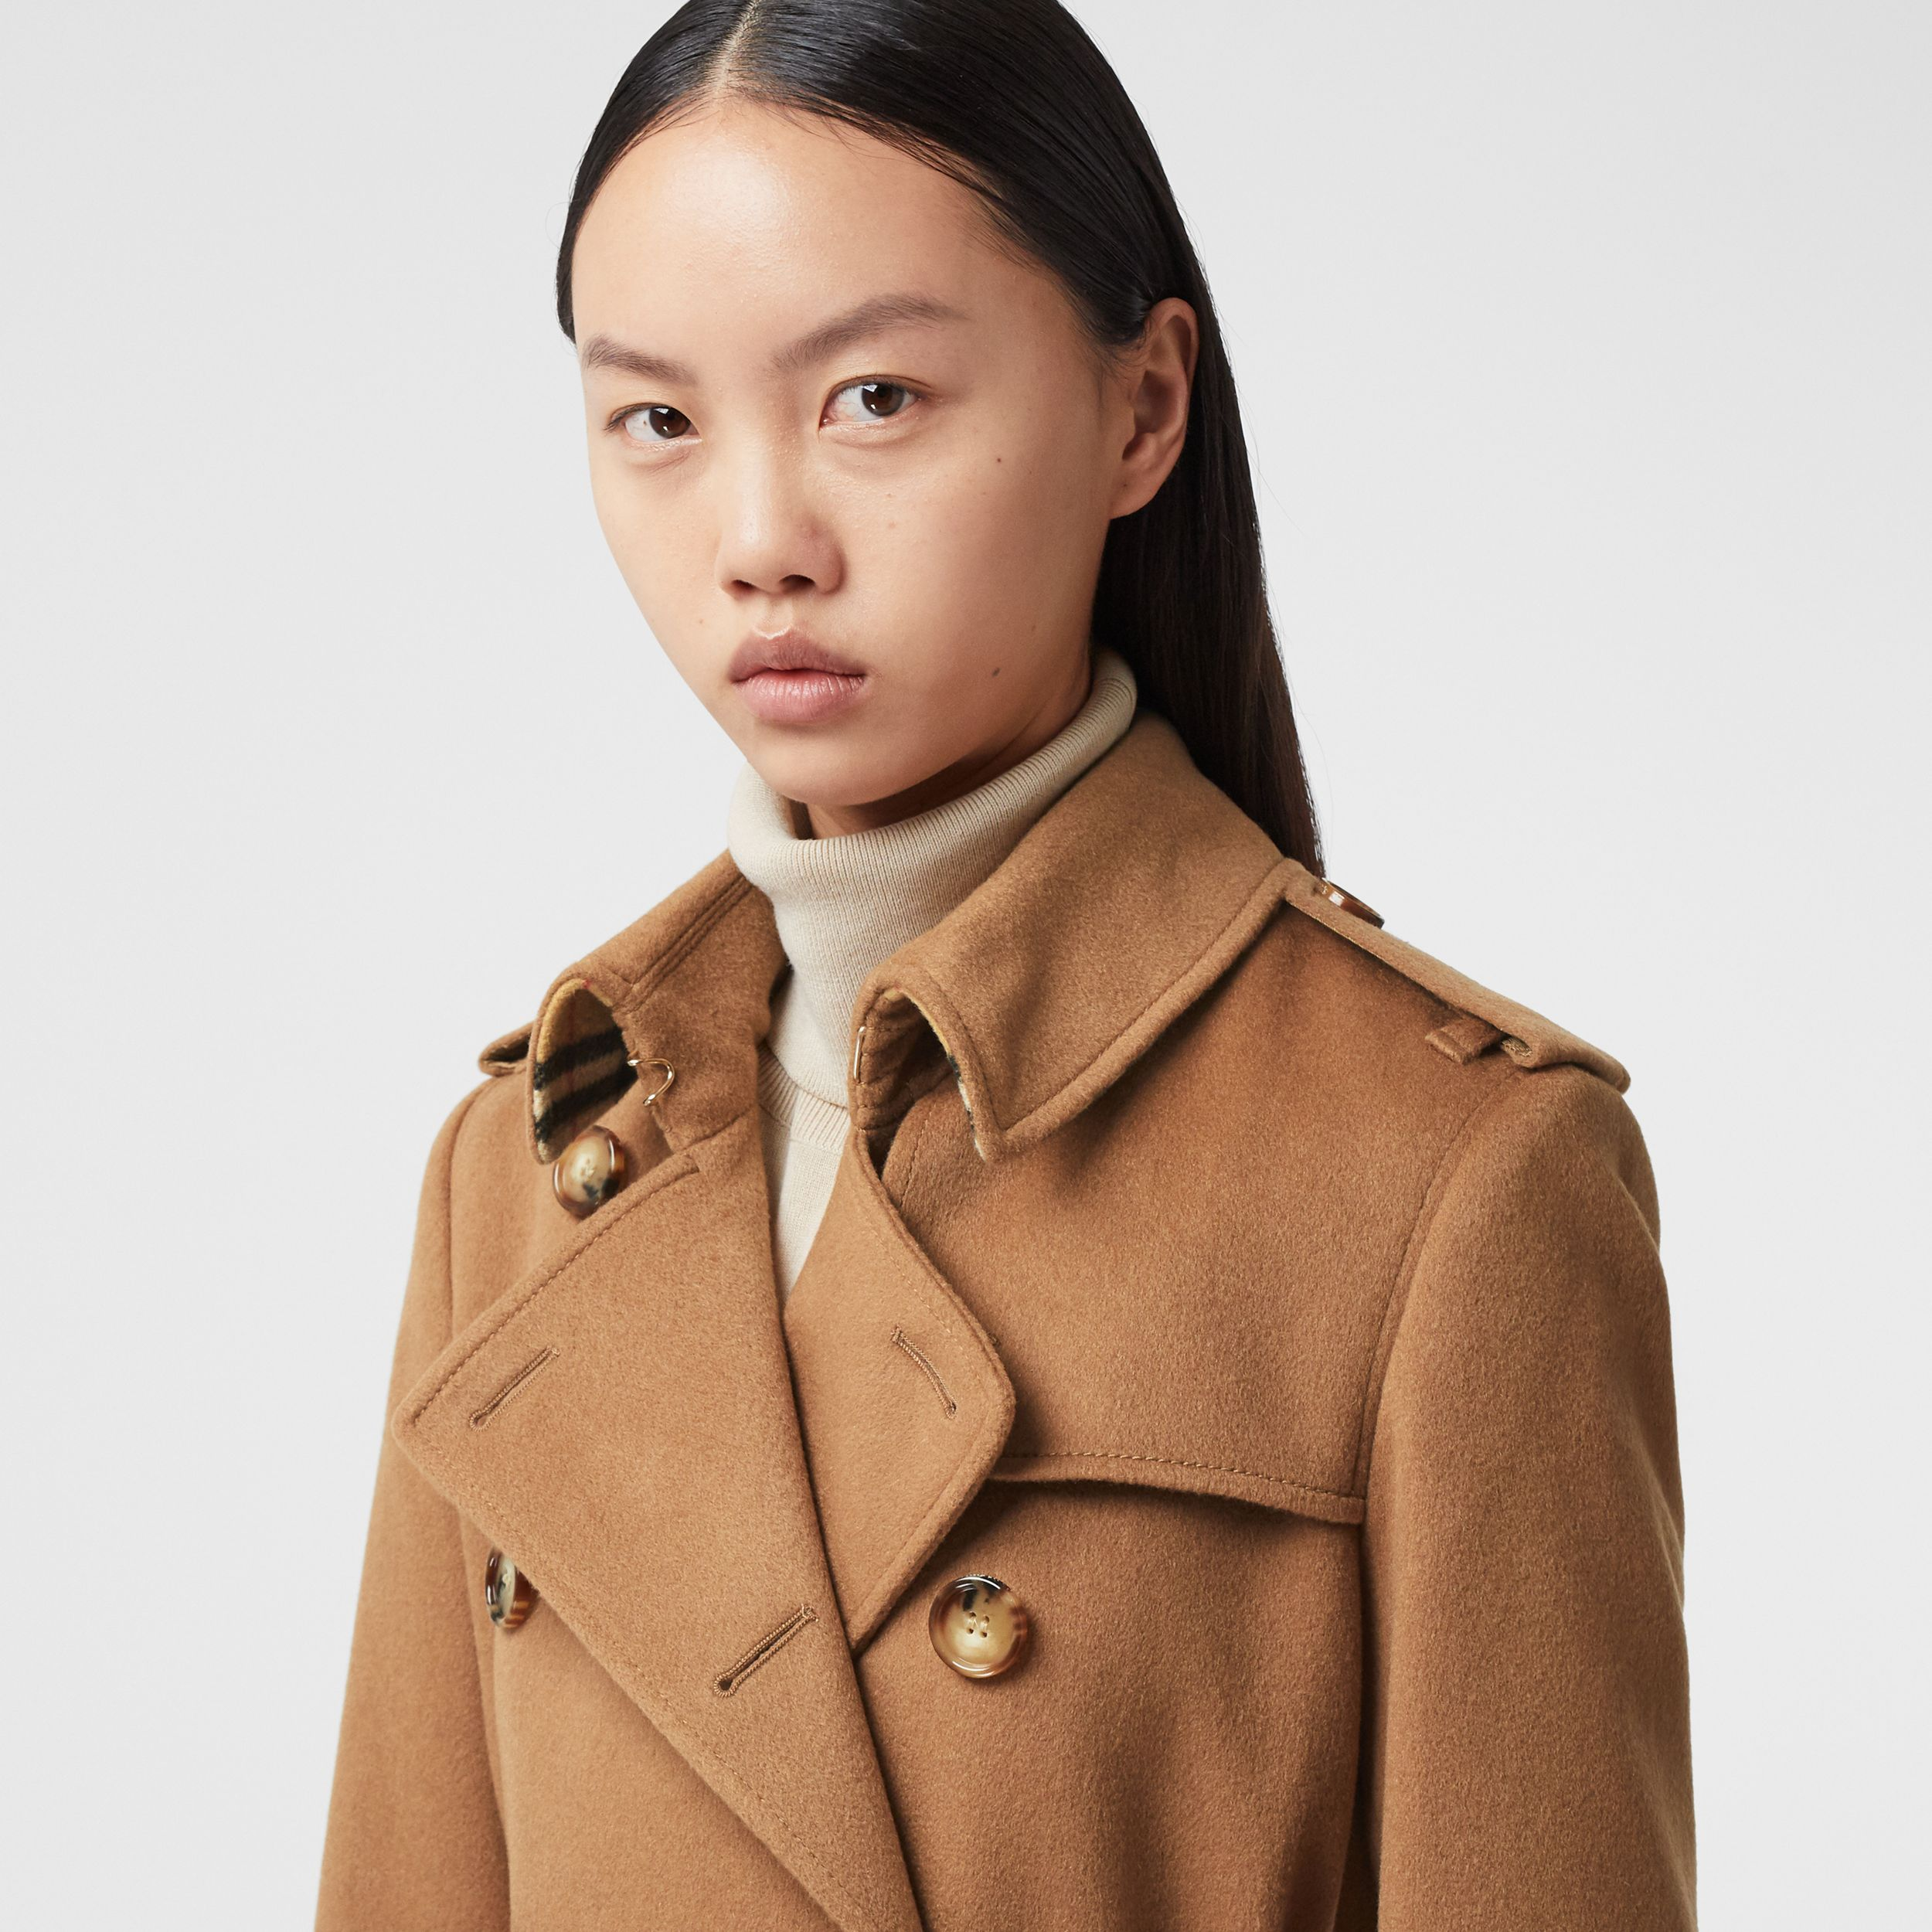 Cashmere Trench Coat in Bronze - Women | Burberry - 2